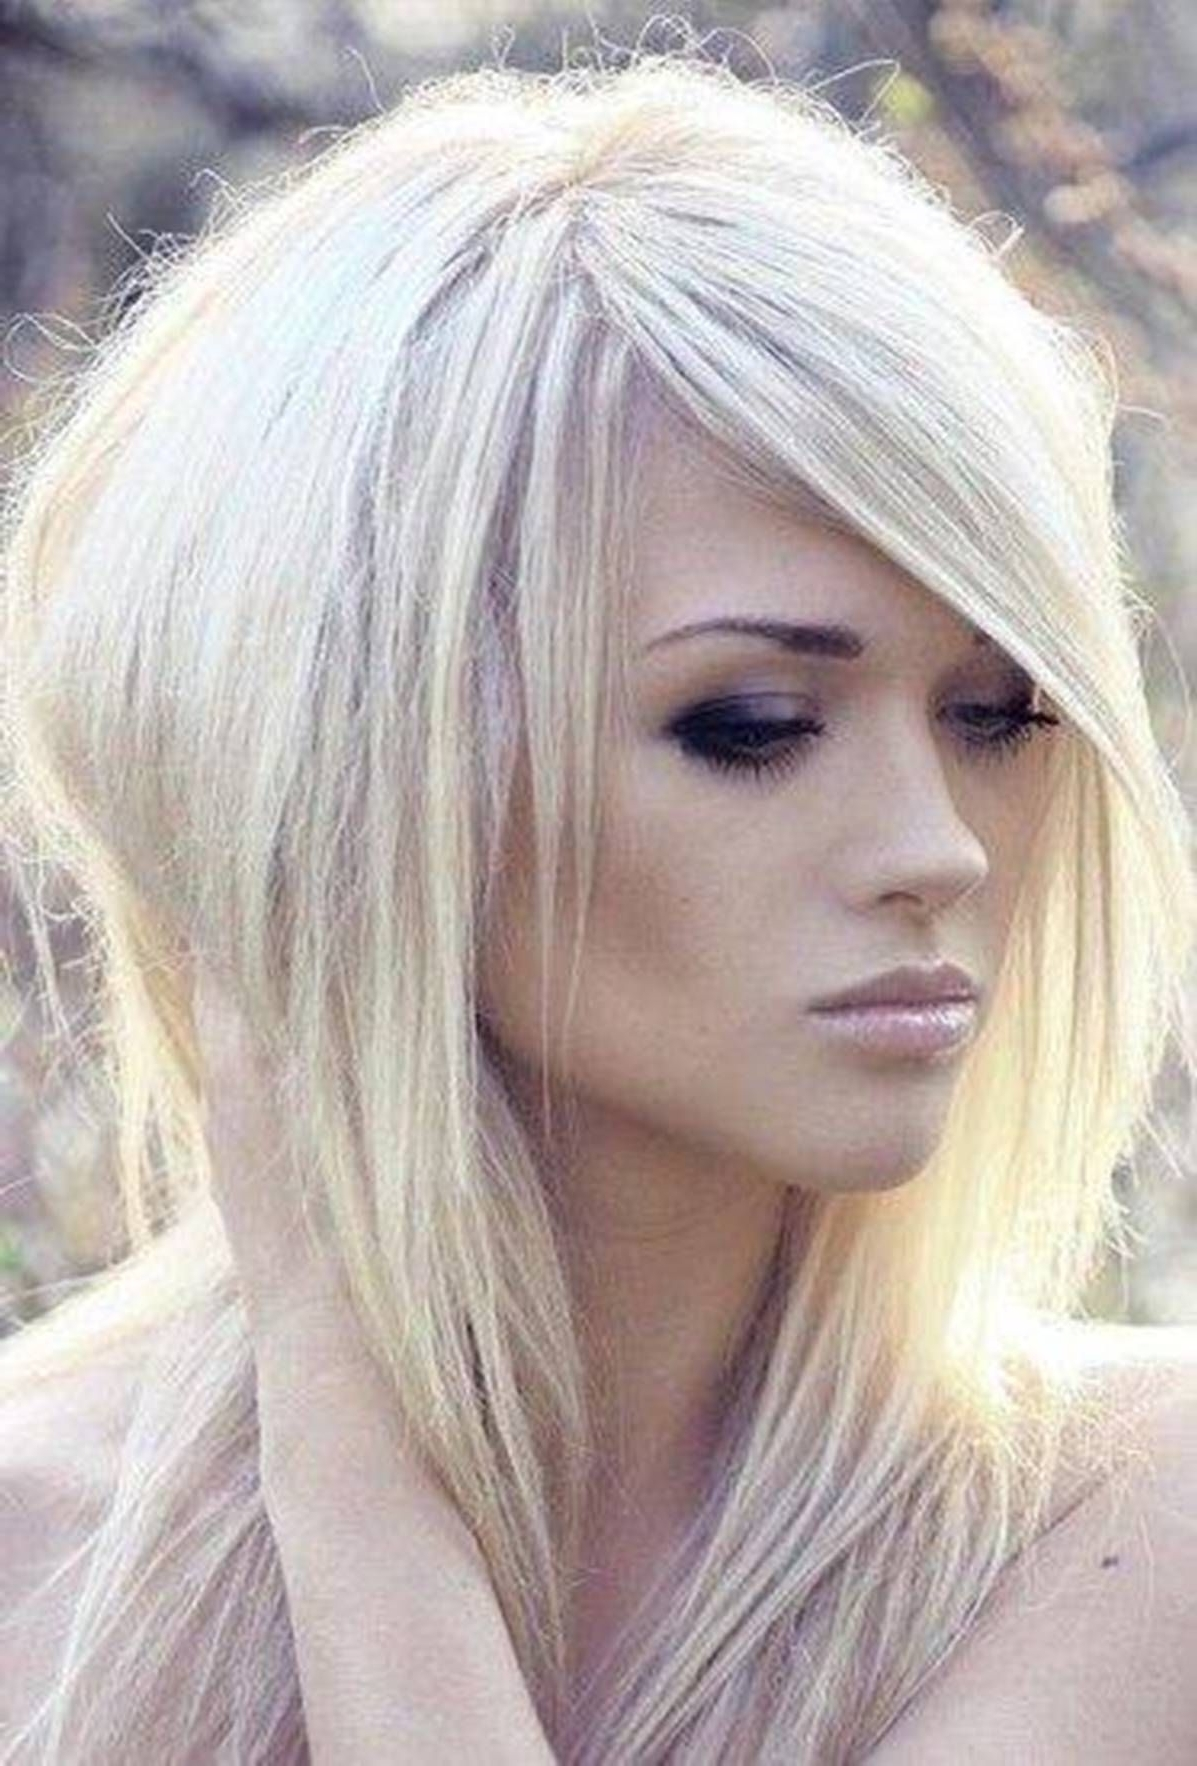 [%famous Layered Shaggy Hairstyles For Long Hair Pertaining To Blonde Long Shag Hairstyles [ Waterbabiesbikini ] #beauty|blonde Long Shag Hairstyles [ Waterbabiesbikini ] #beauty Intended For Well Known Layered Shaggy Hairstyles For Long Hair%] (View 7 of 15)